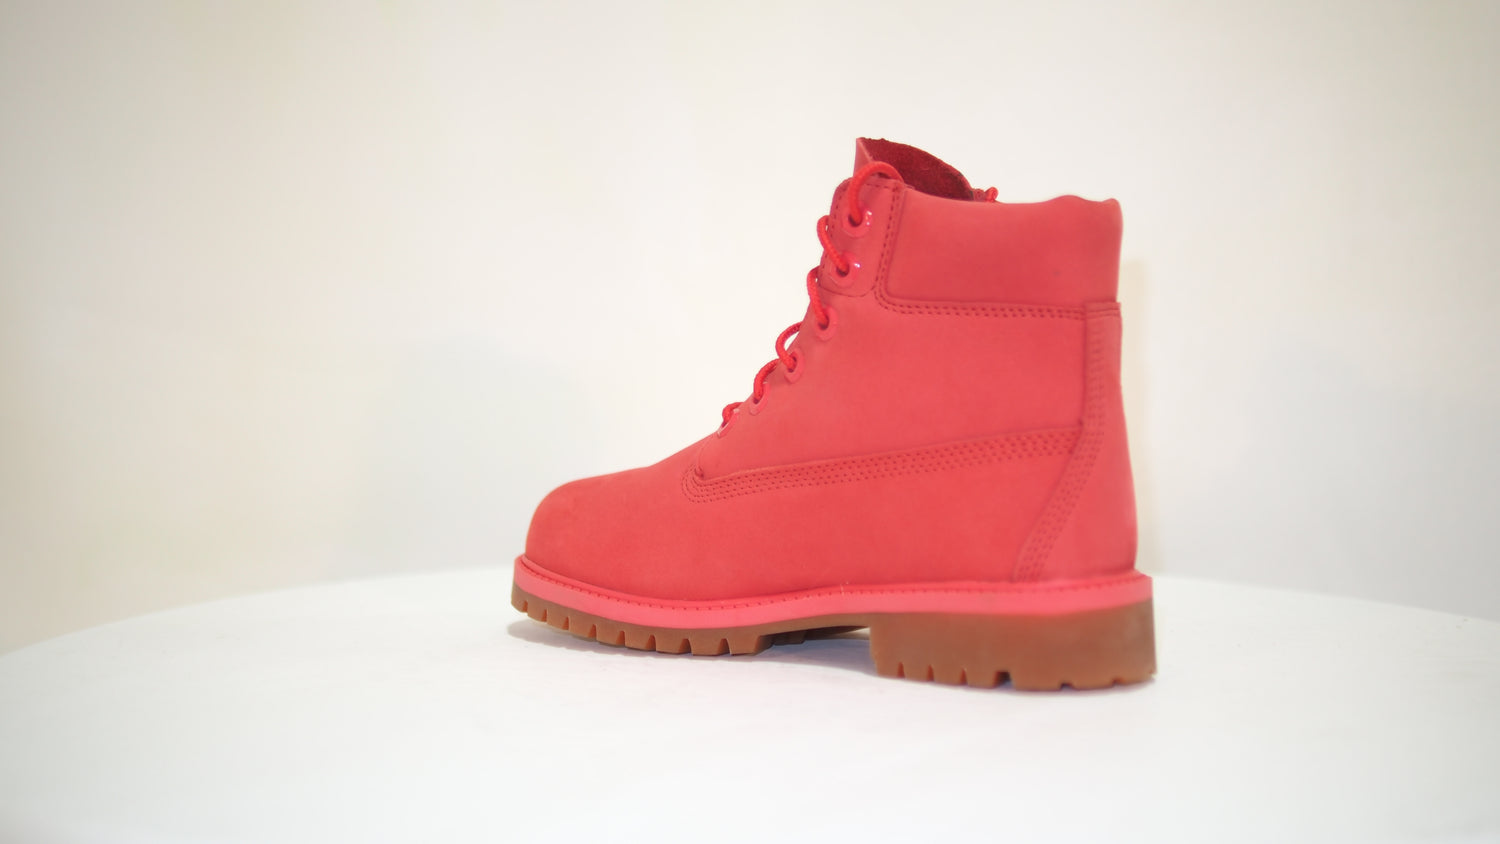 6 Inch Premium Waterproof Boots - Dream Town Shoes